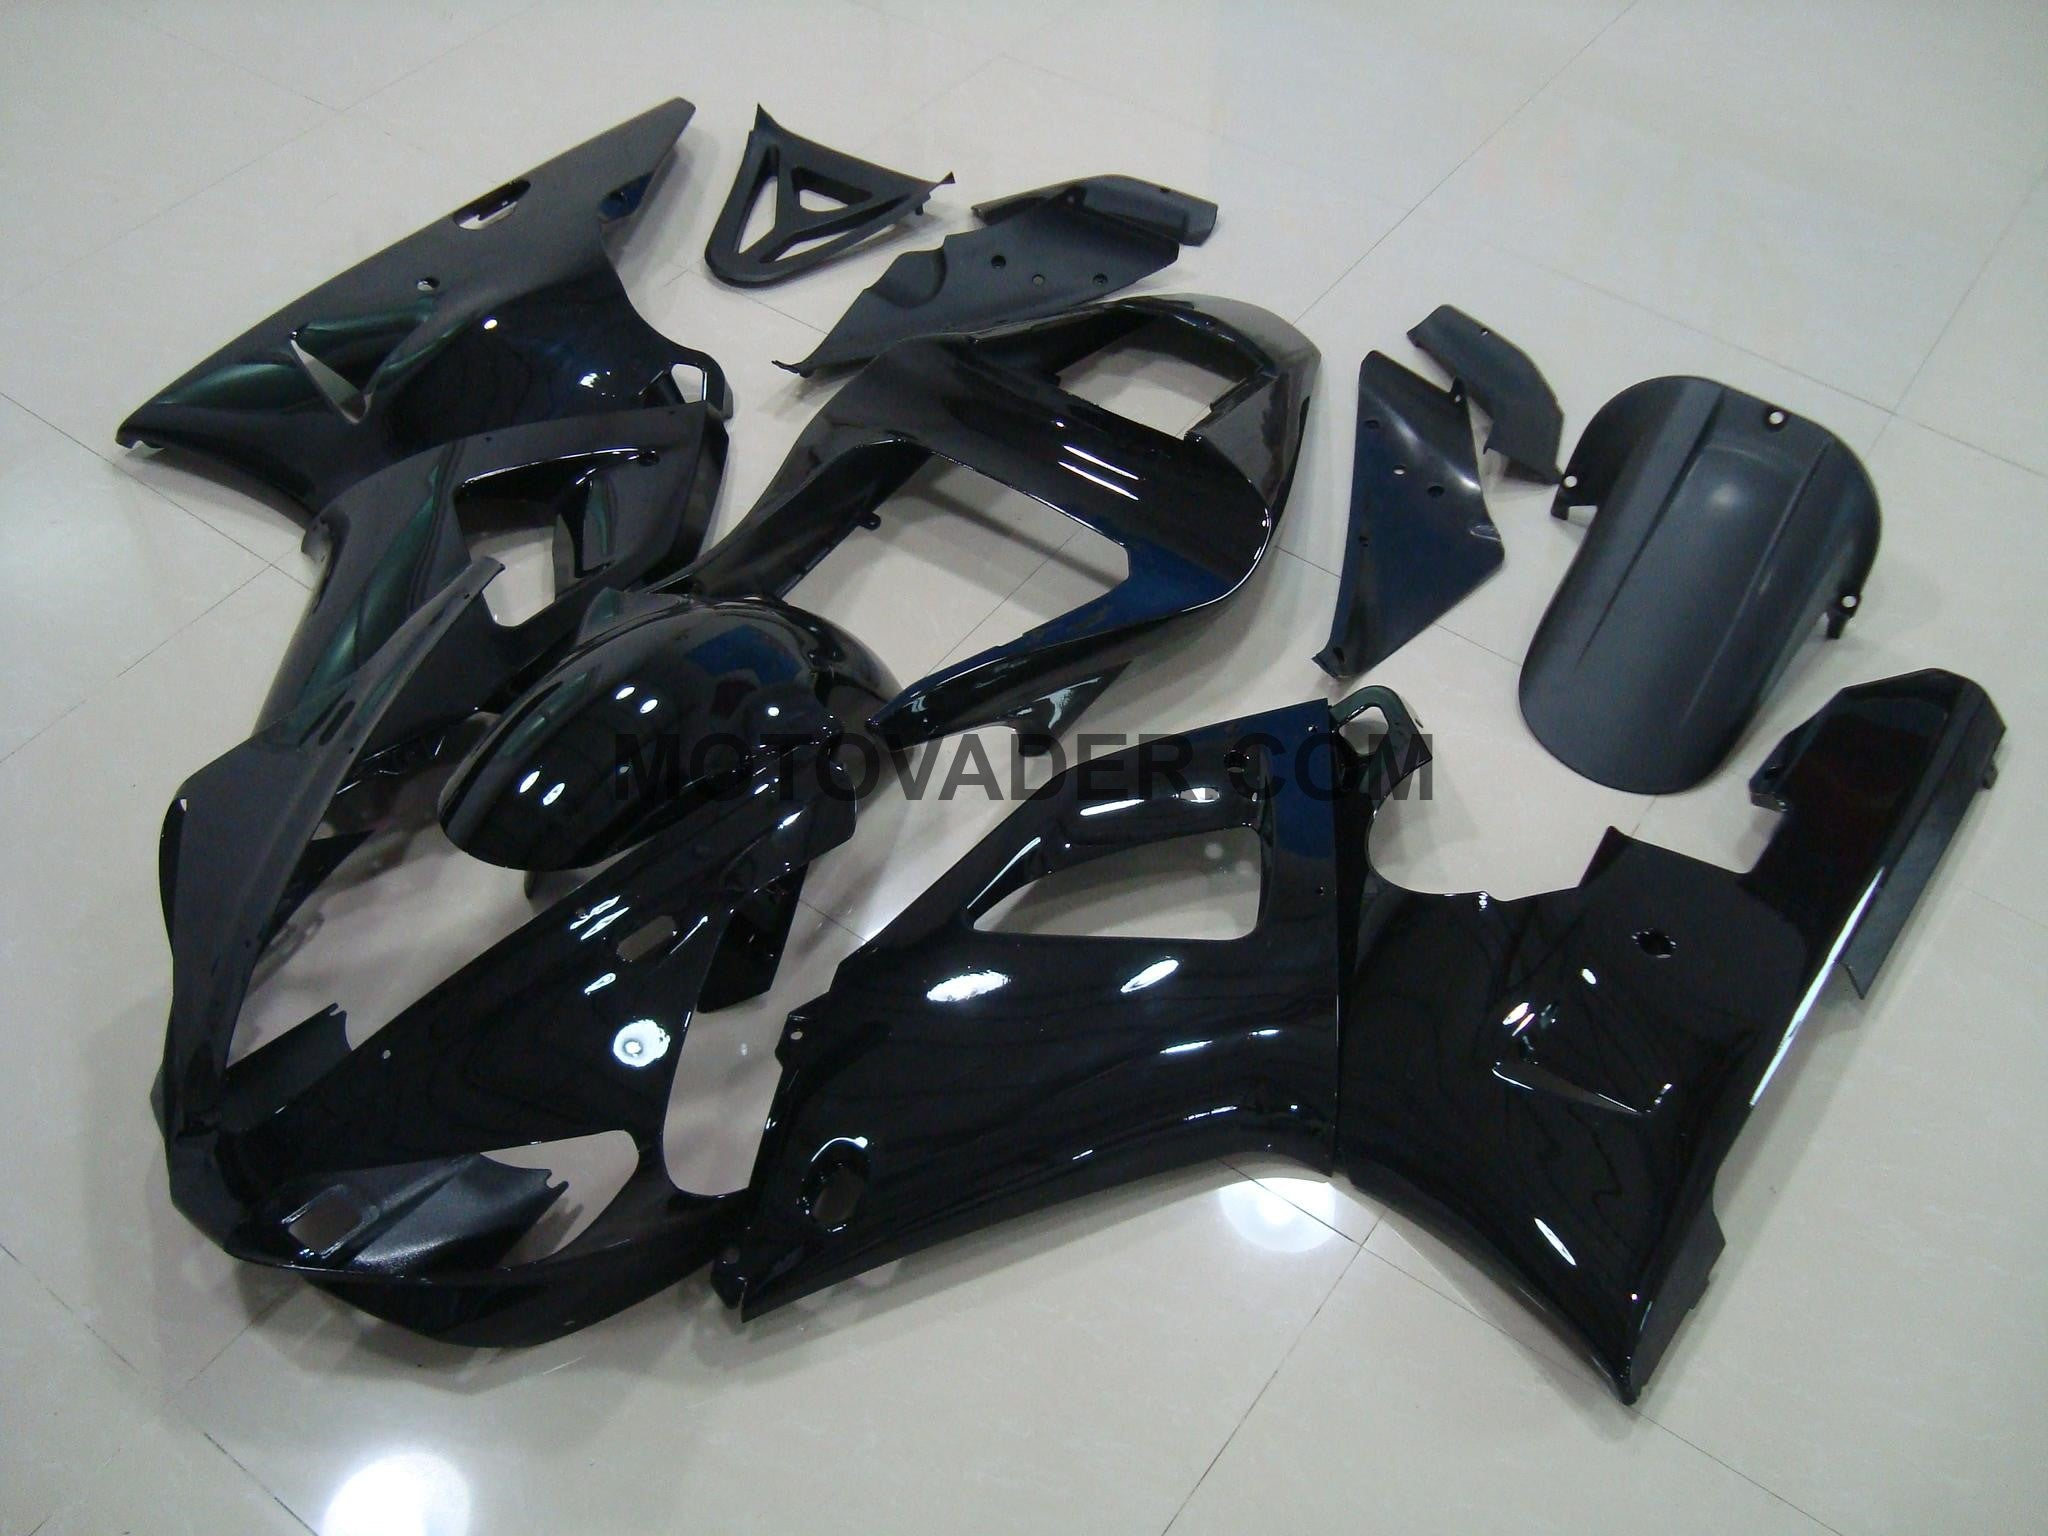 Yamaha R1 2000-2001 All Black 2 Fairing